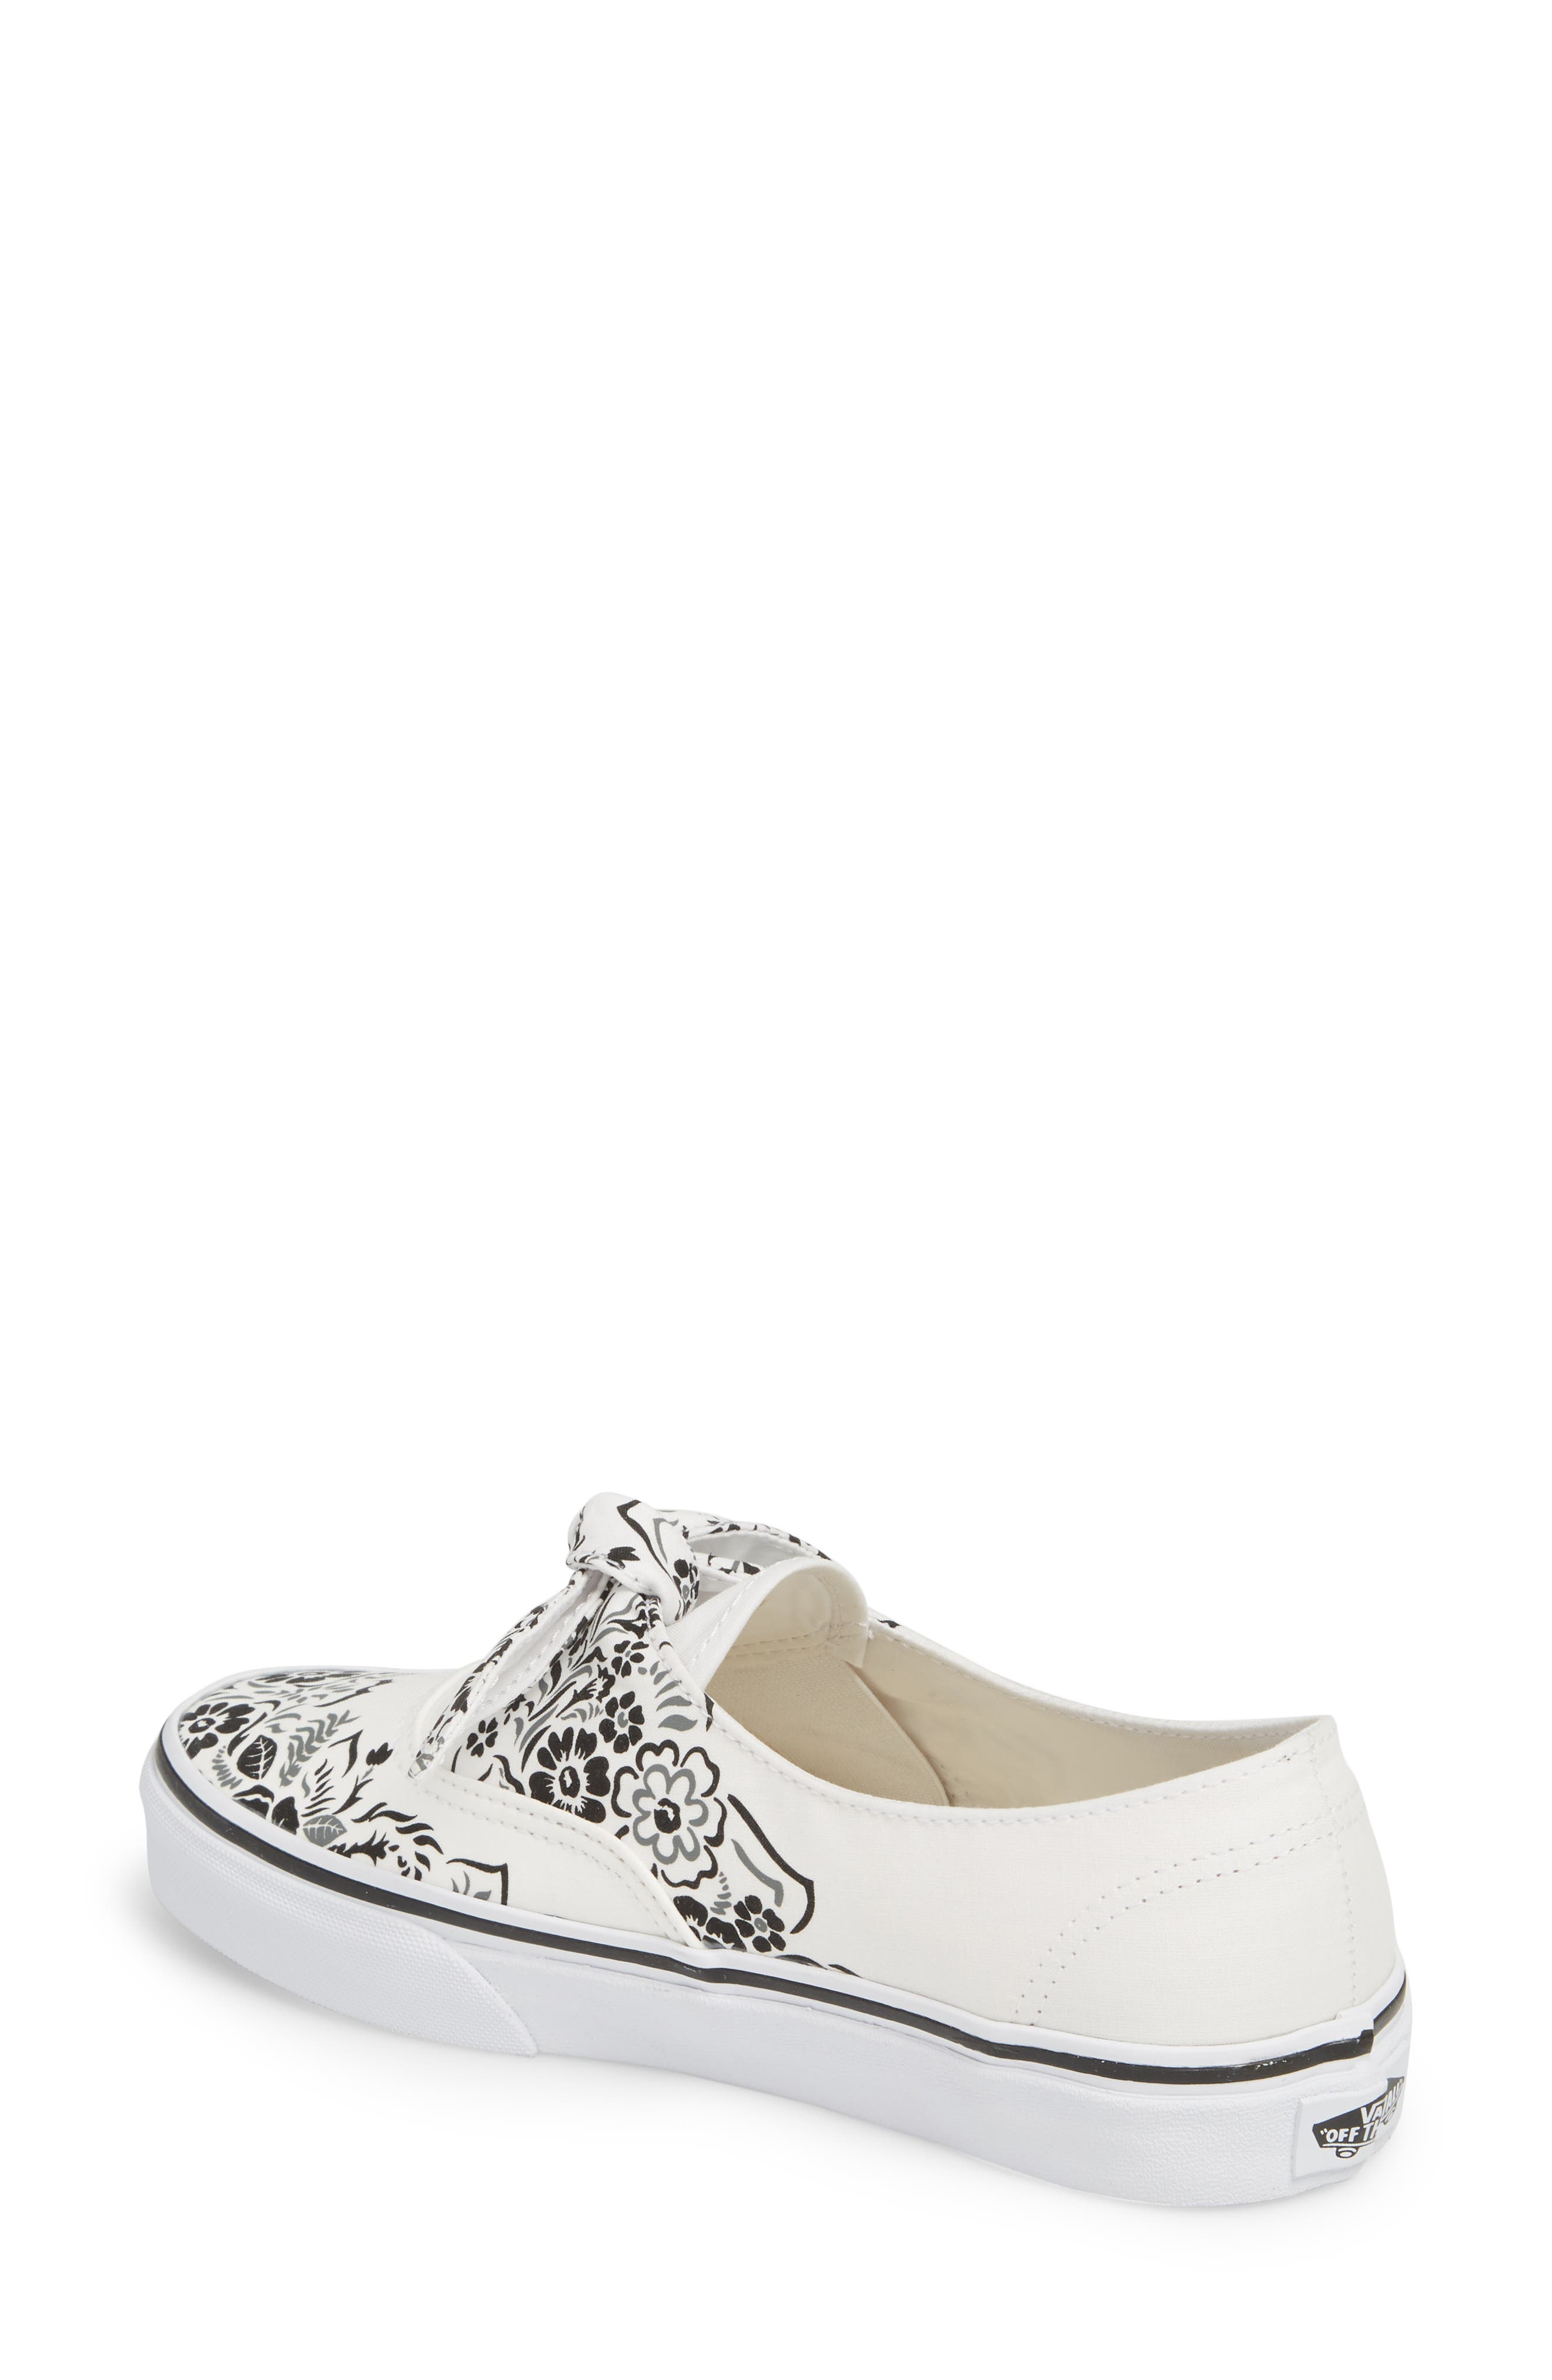 UA Authentic Knotted Floral Bandana Slip-On Sneaker,                             Alternate thumbnail 2, color,                             Marshmallow